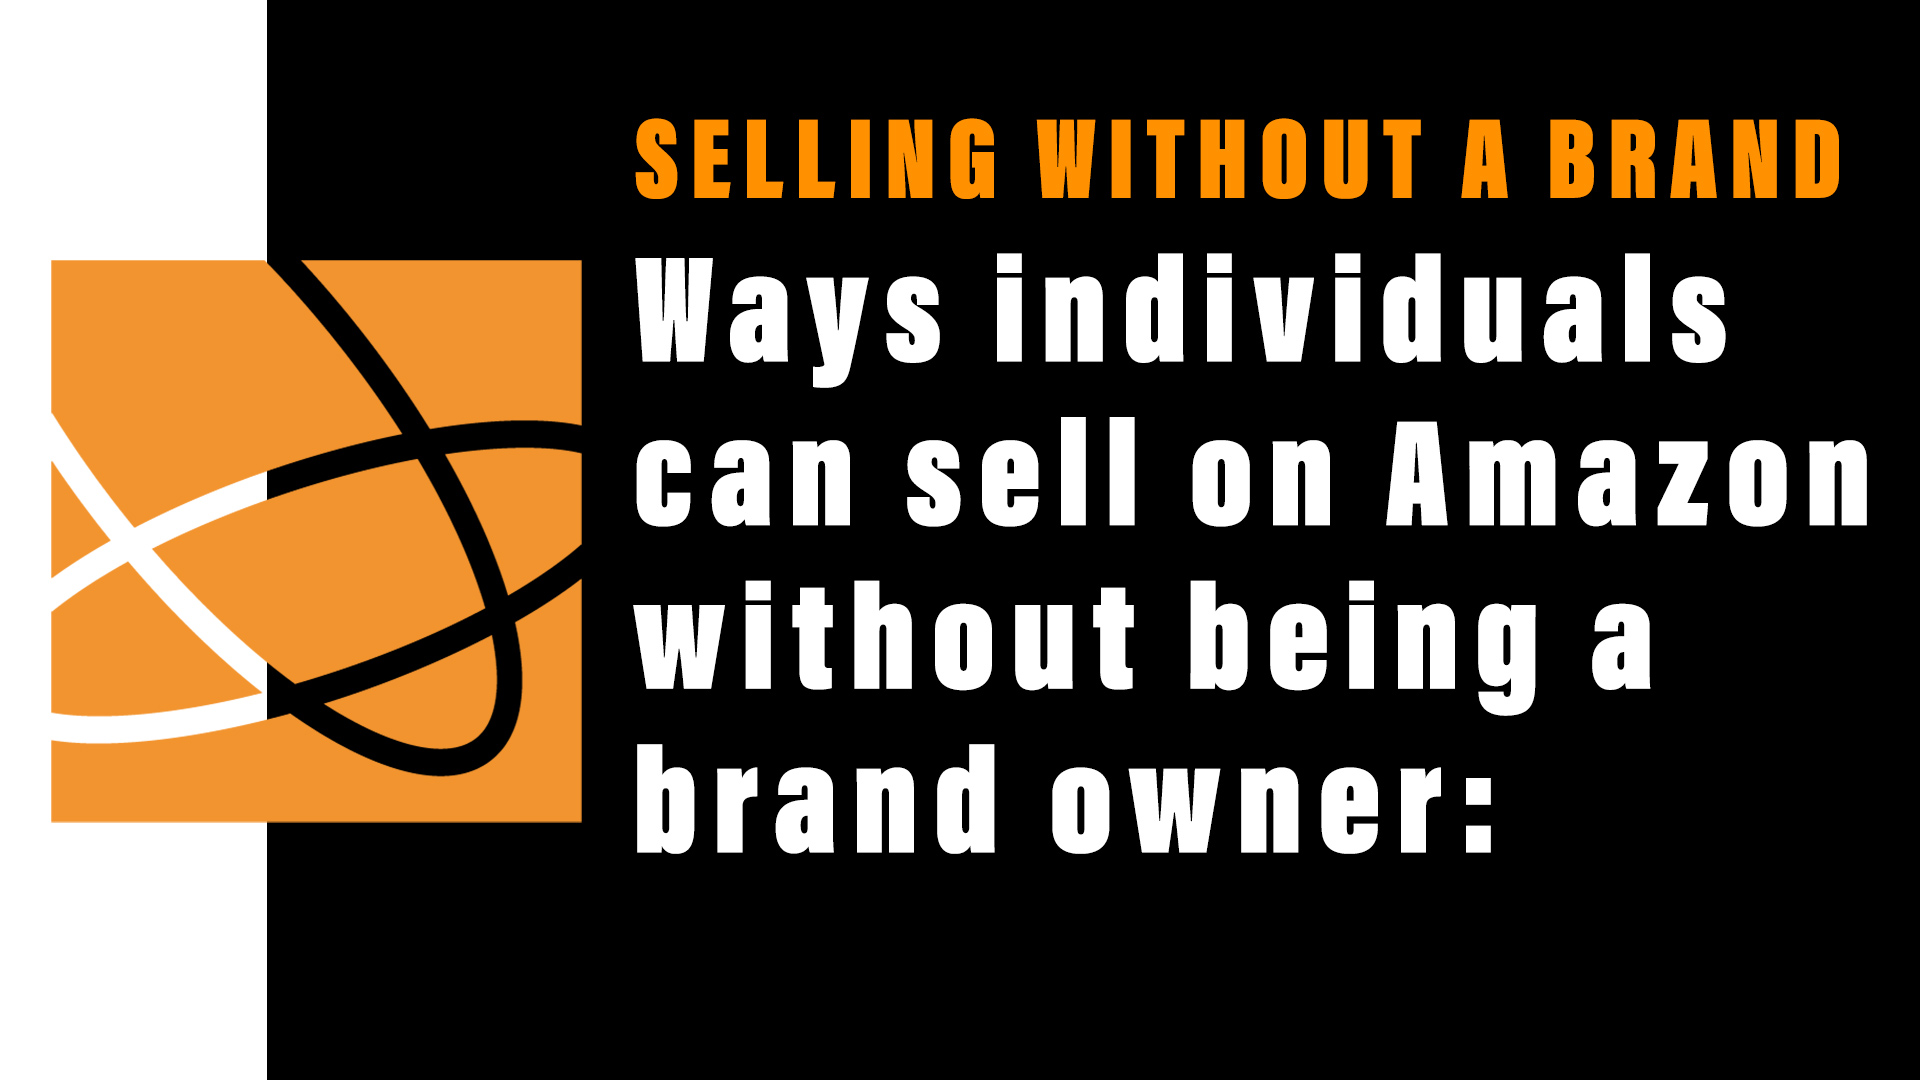 selling without a brand